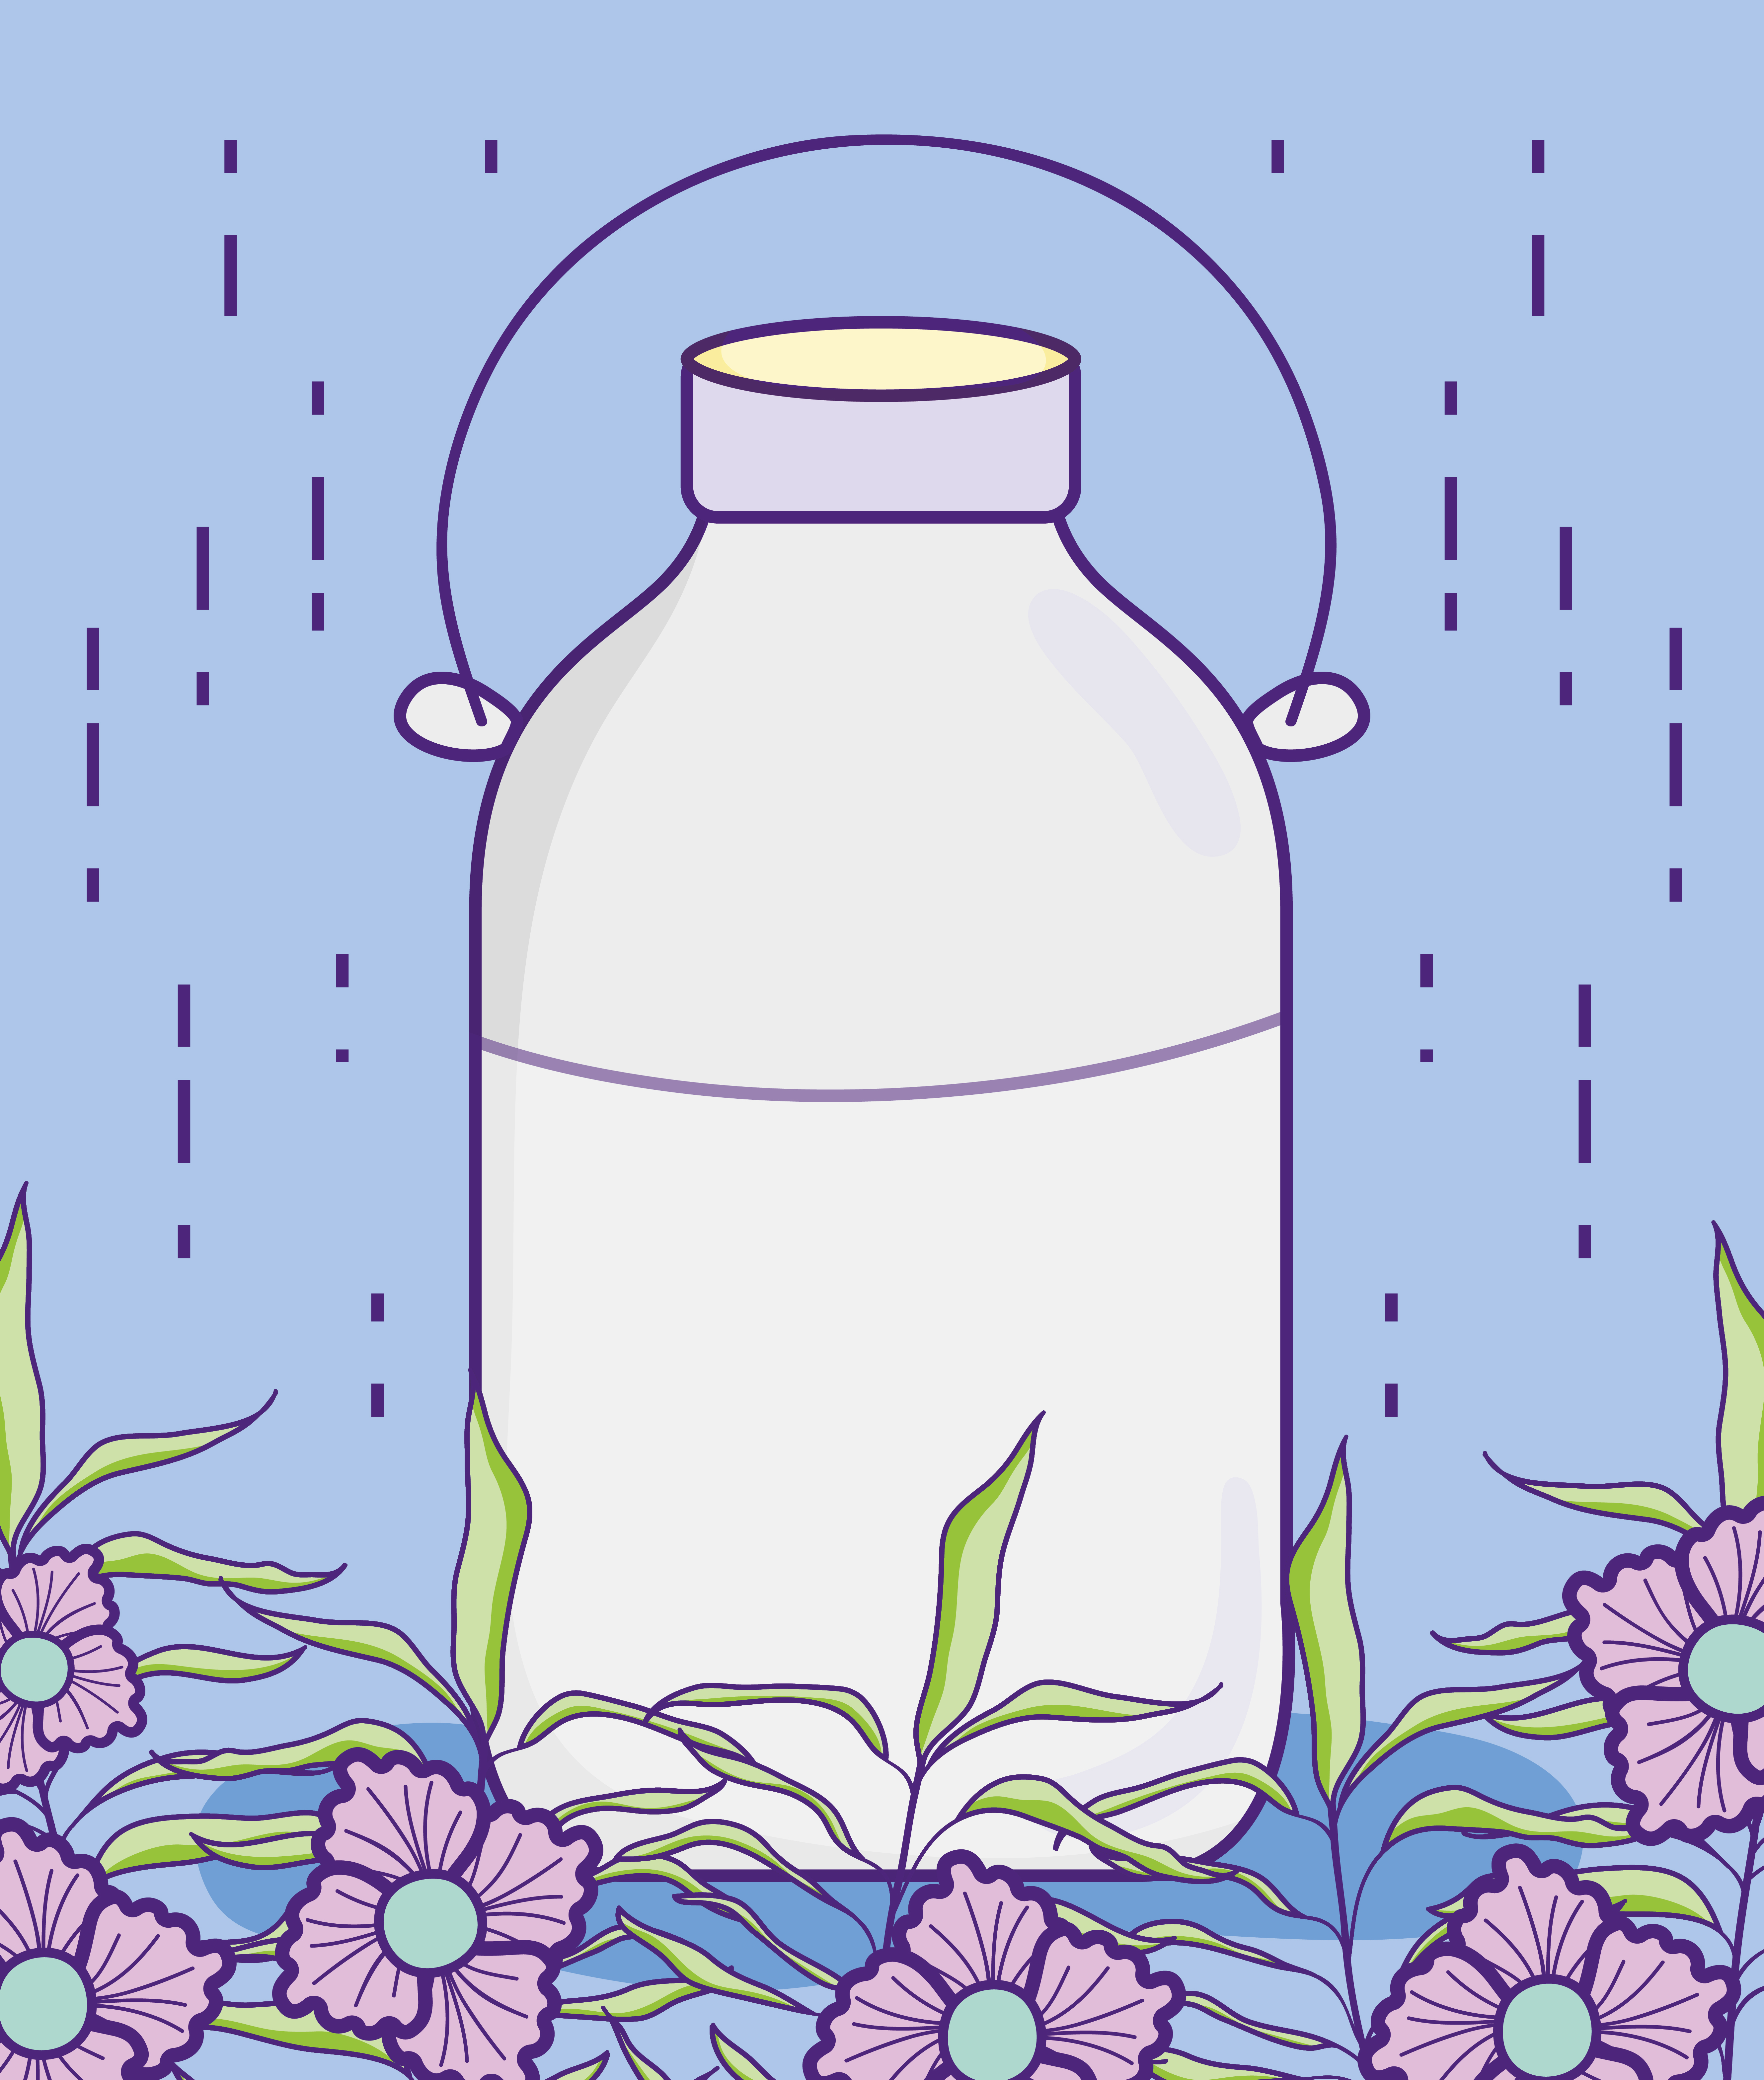 Mason jar with flowers - Download Free Vectors, Clipart ...